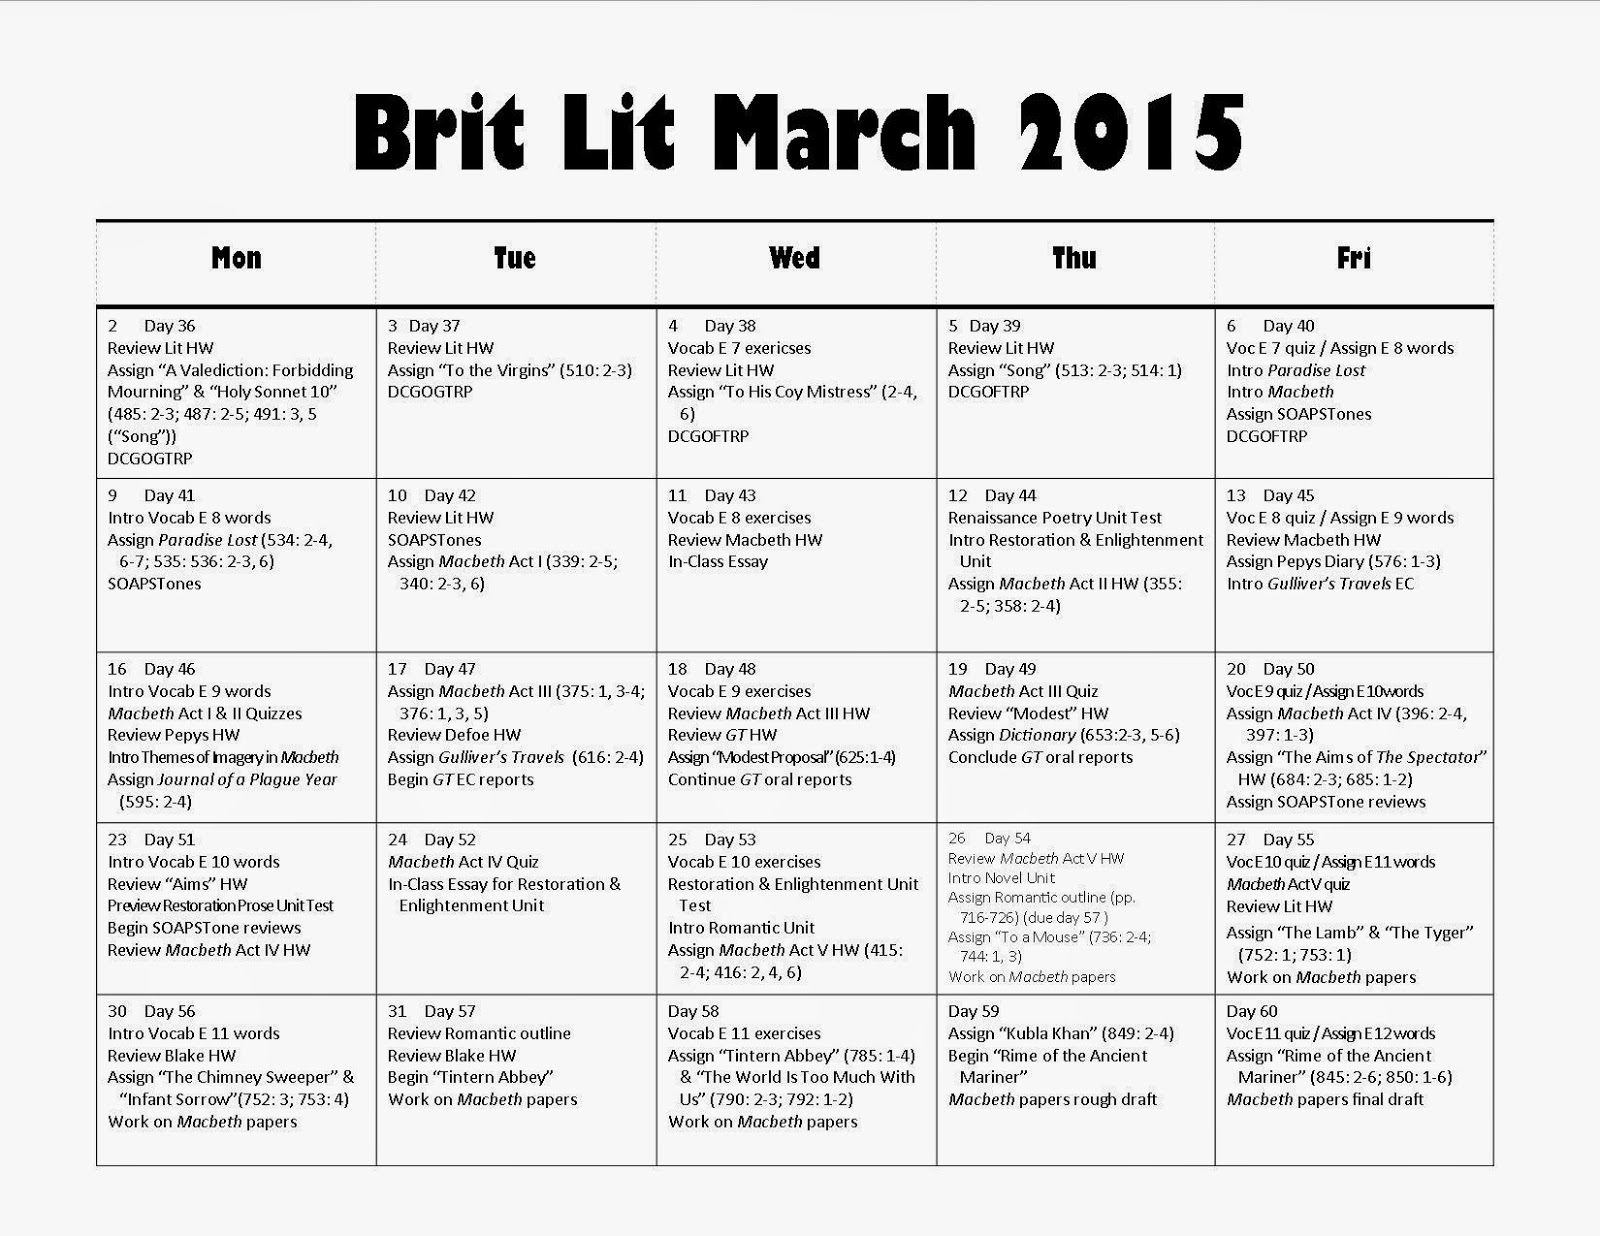 Dr C S Brit Lit Wednesday 18 2015